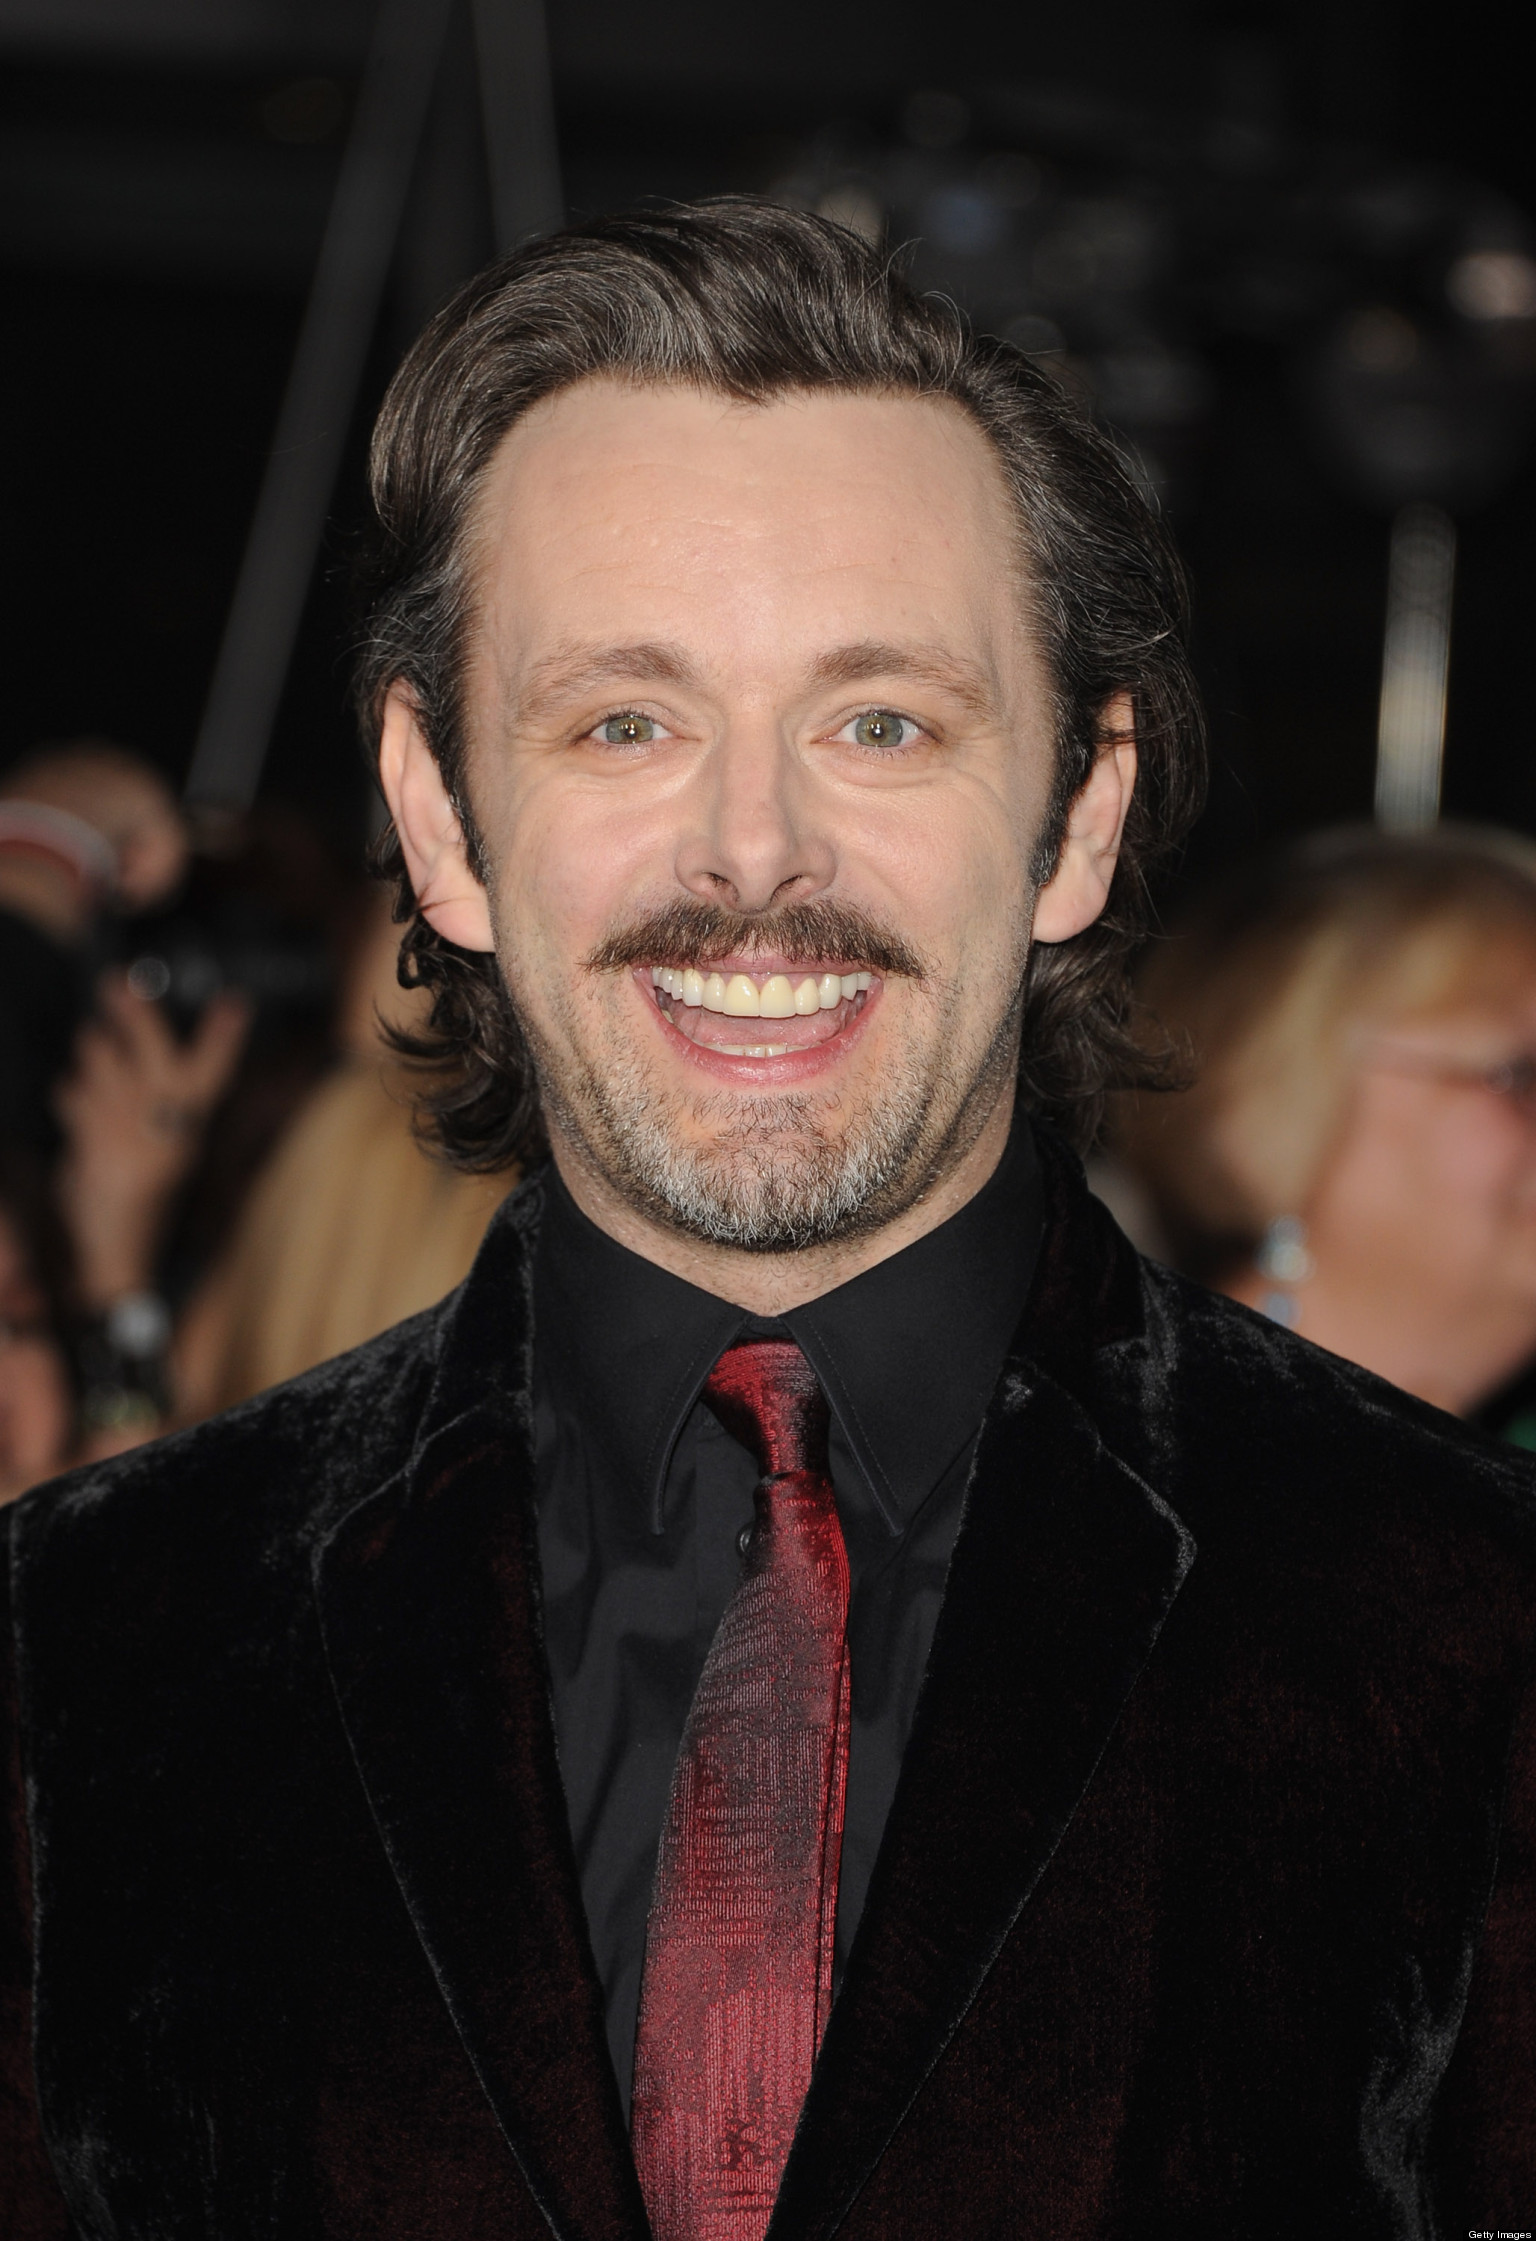 michael sheen   u0026 39 breaking dawn part 2 u0026 39  star  talks about